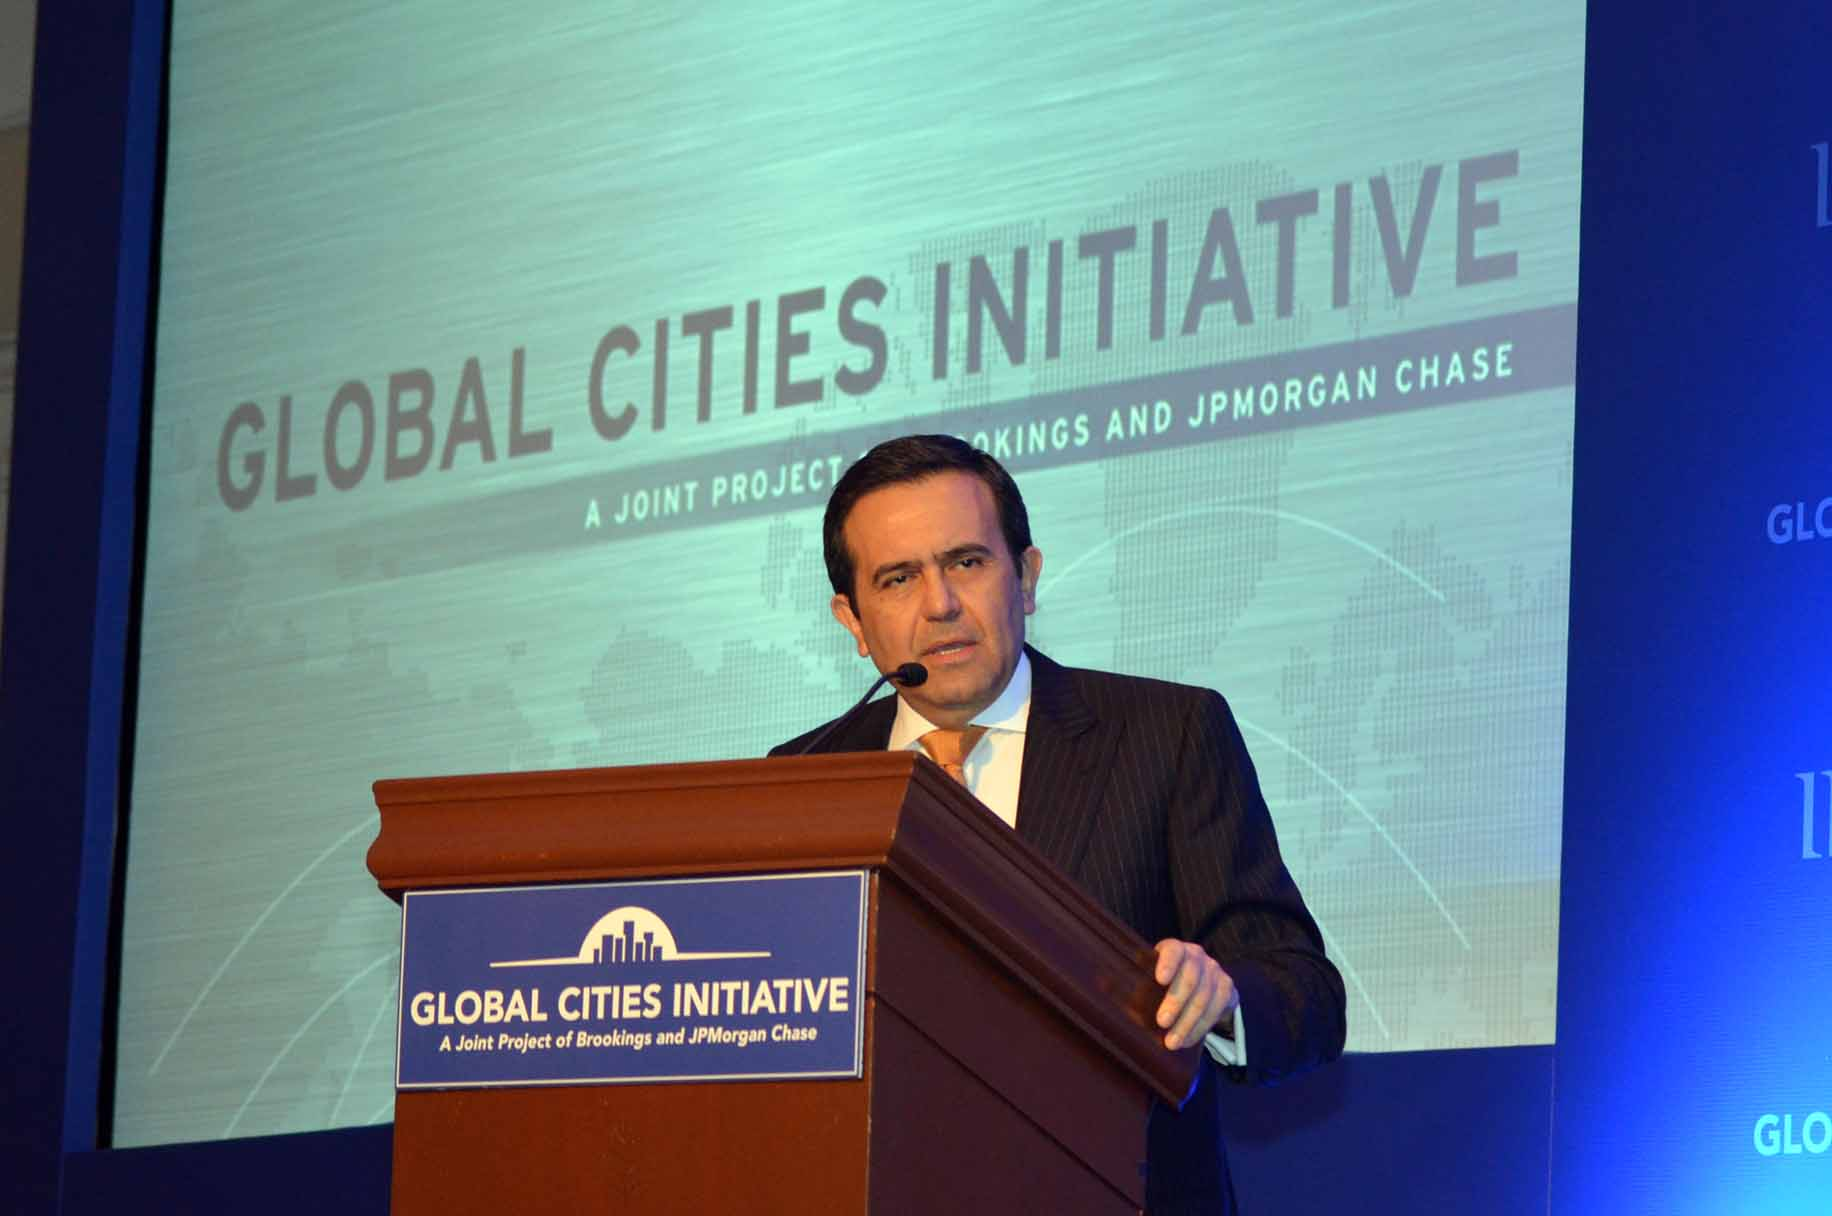 Global cities initiative 8